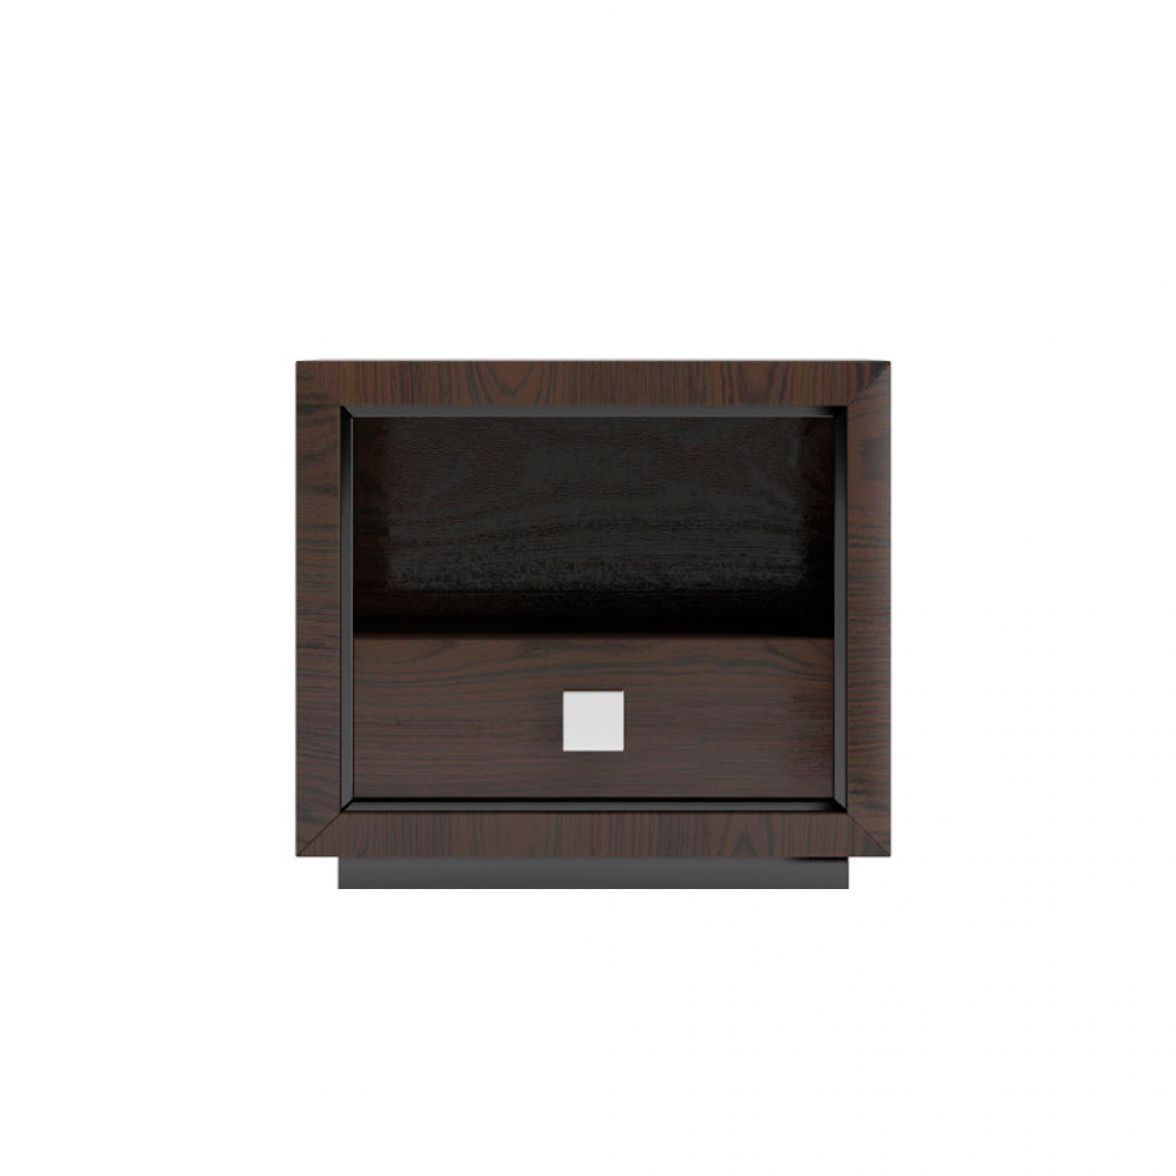 Kubo bedside table